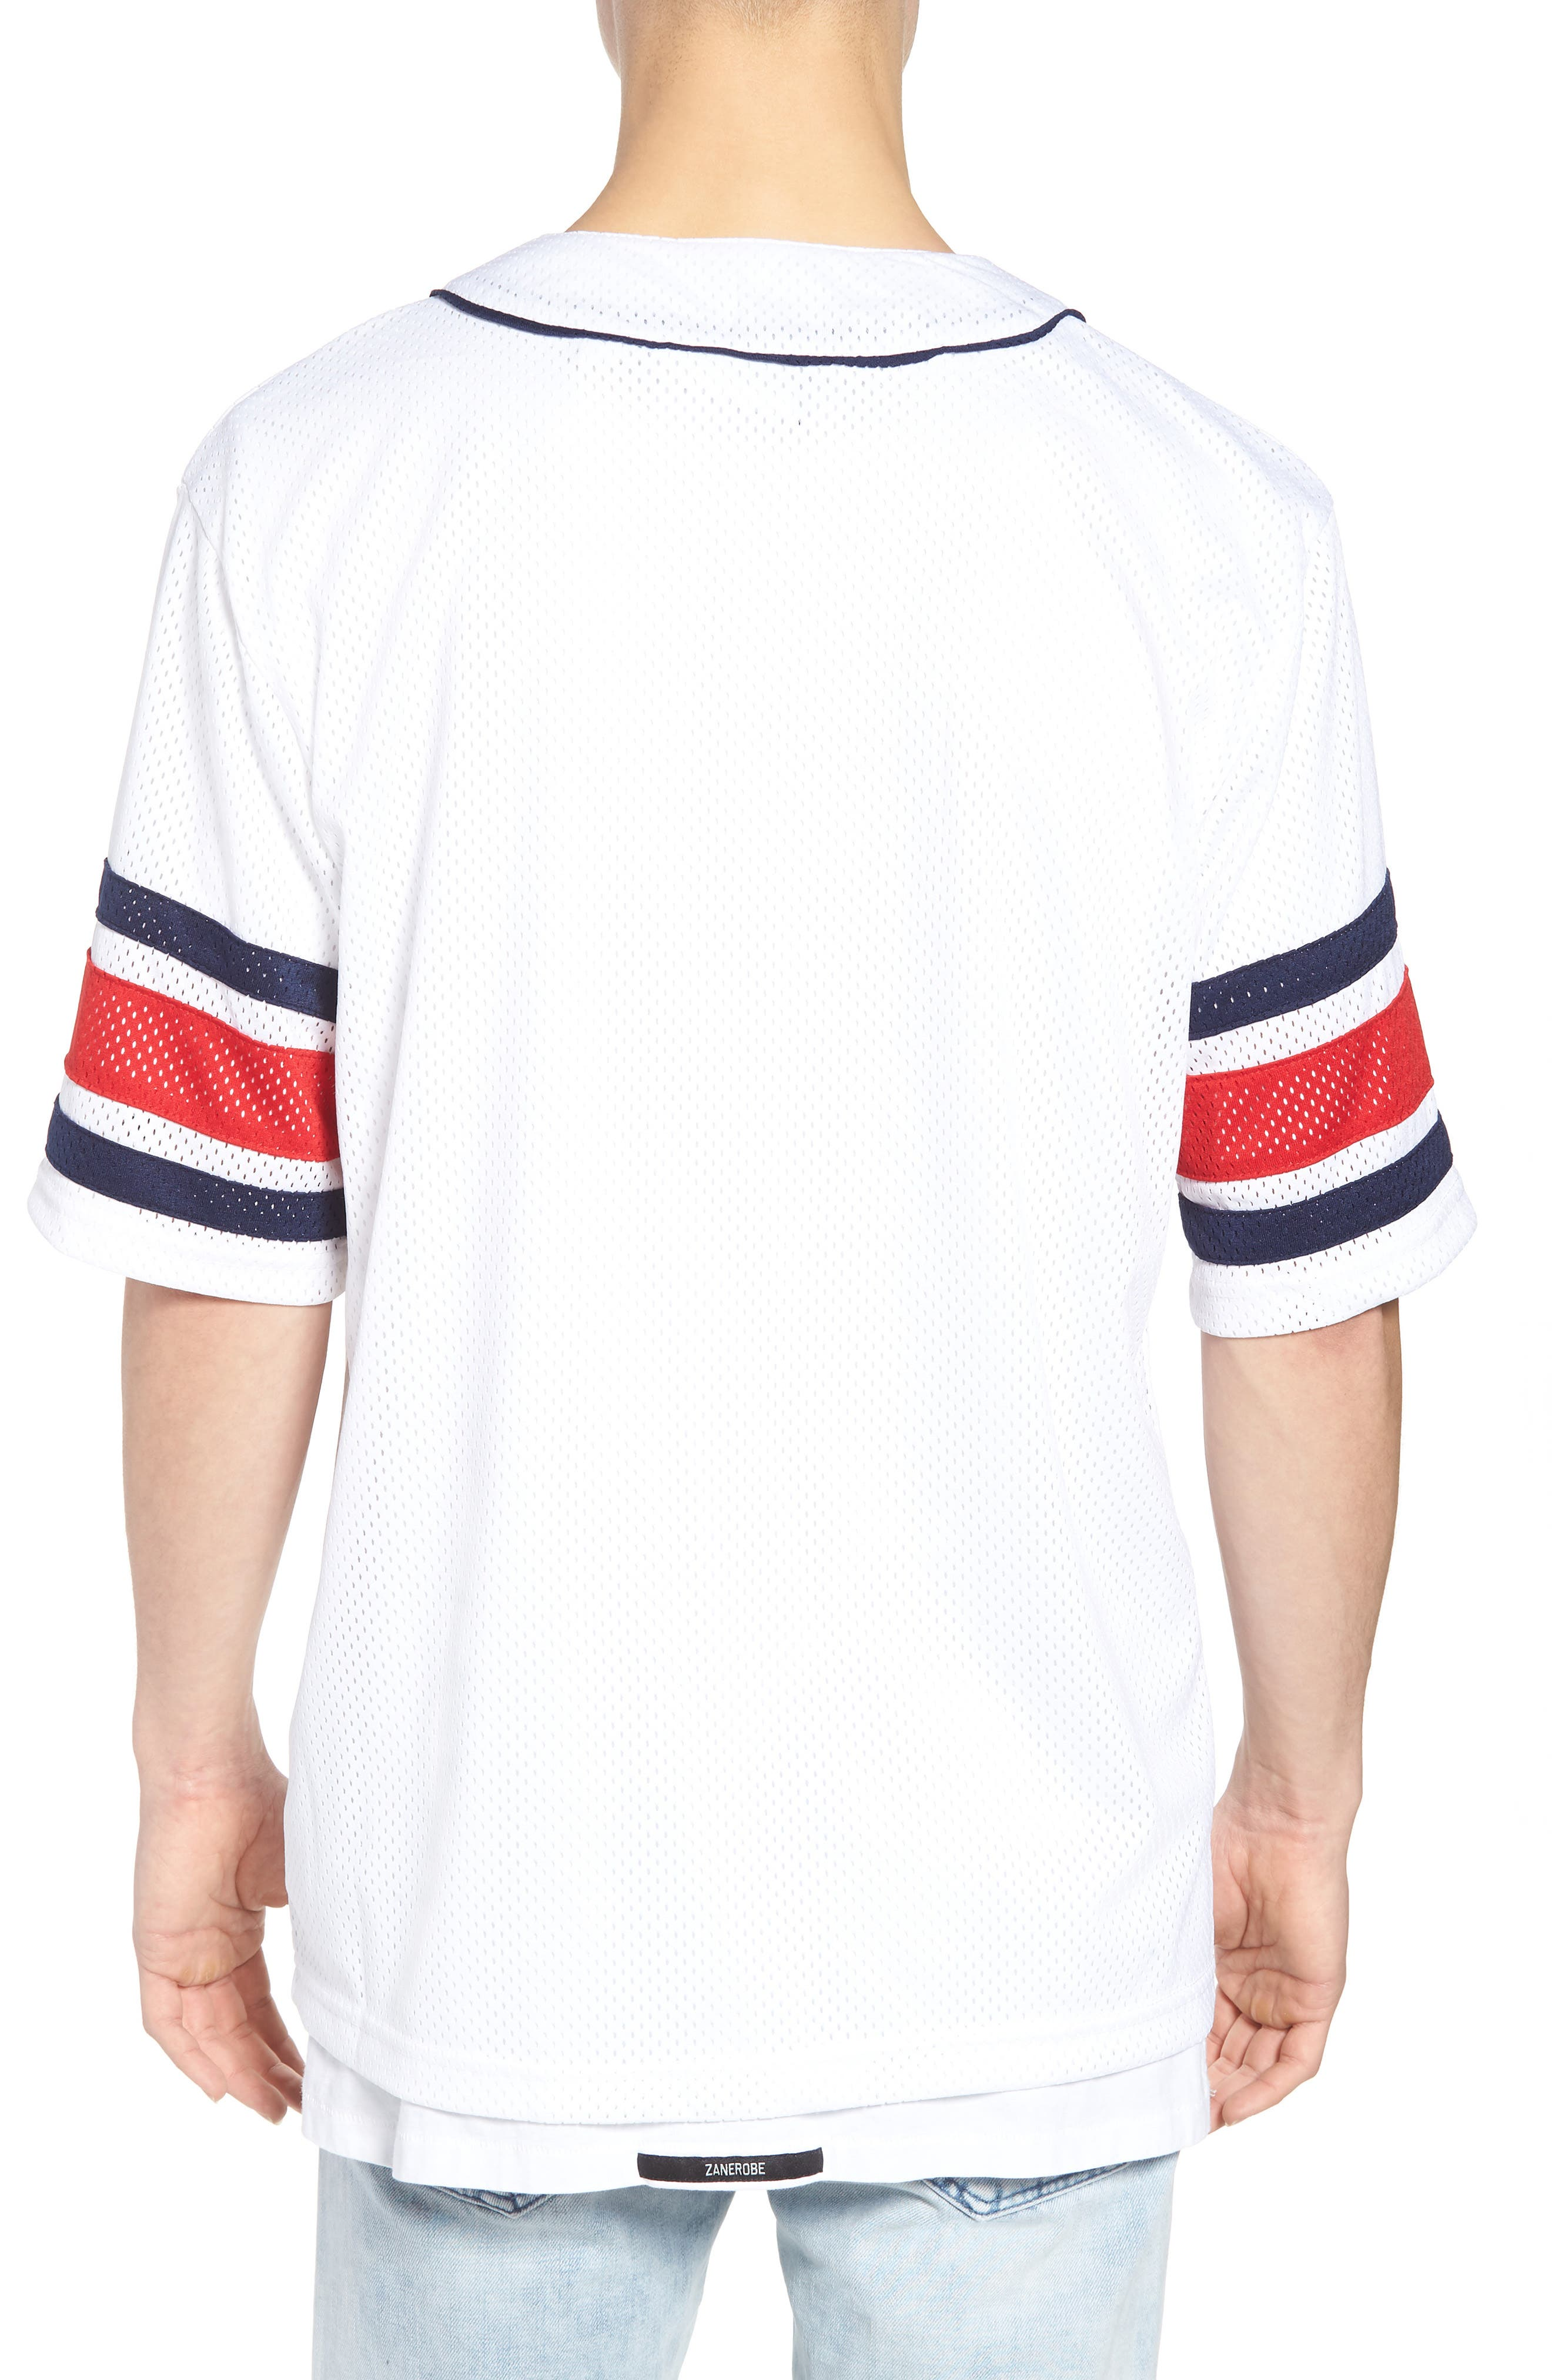 Kyler Baseball Jersey,                             Alternate thumbnail 2, color,                             White/ Peacoat/ Chinese Red